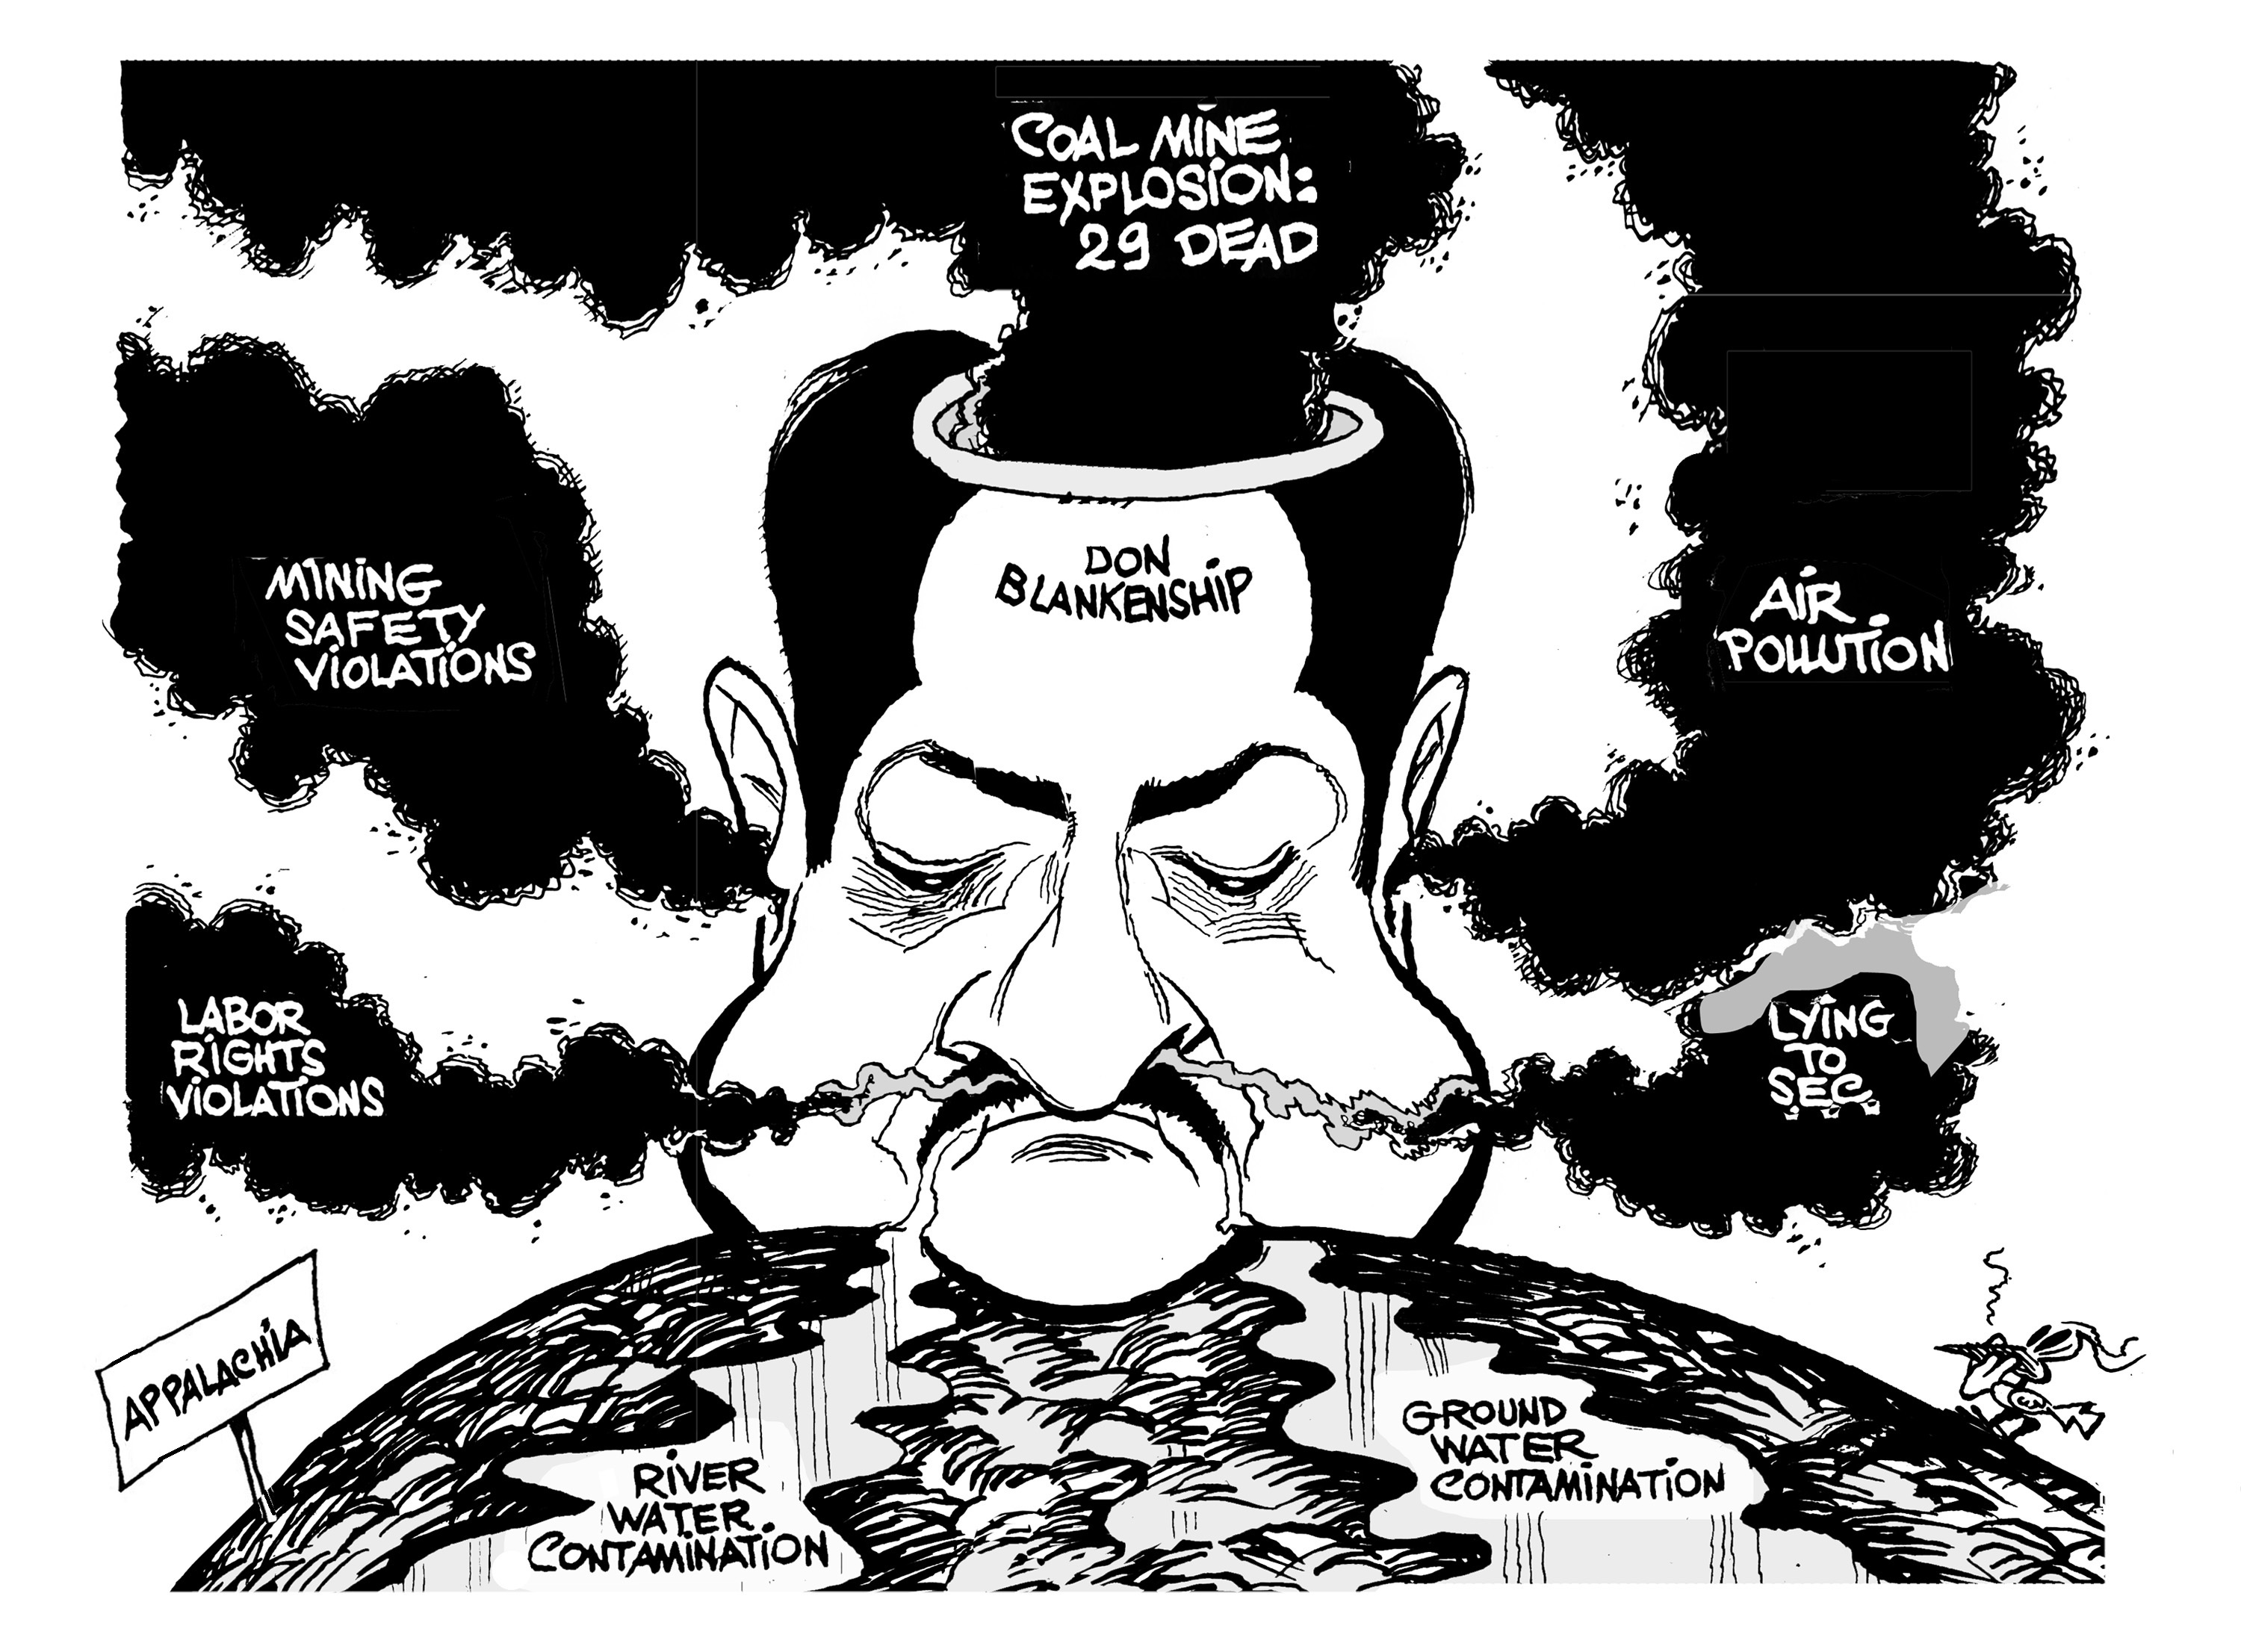 http://otherwords.org/wp-content/uploads/2015/10/don-blankenship-otherwords-cartoon.jpg